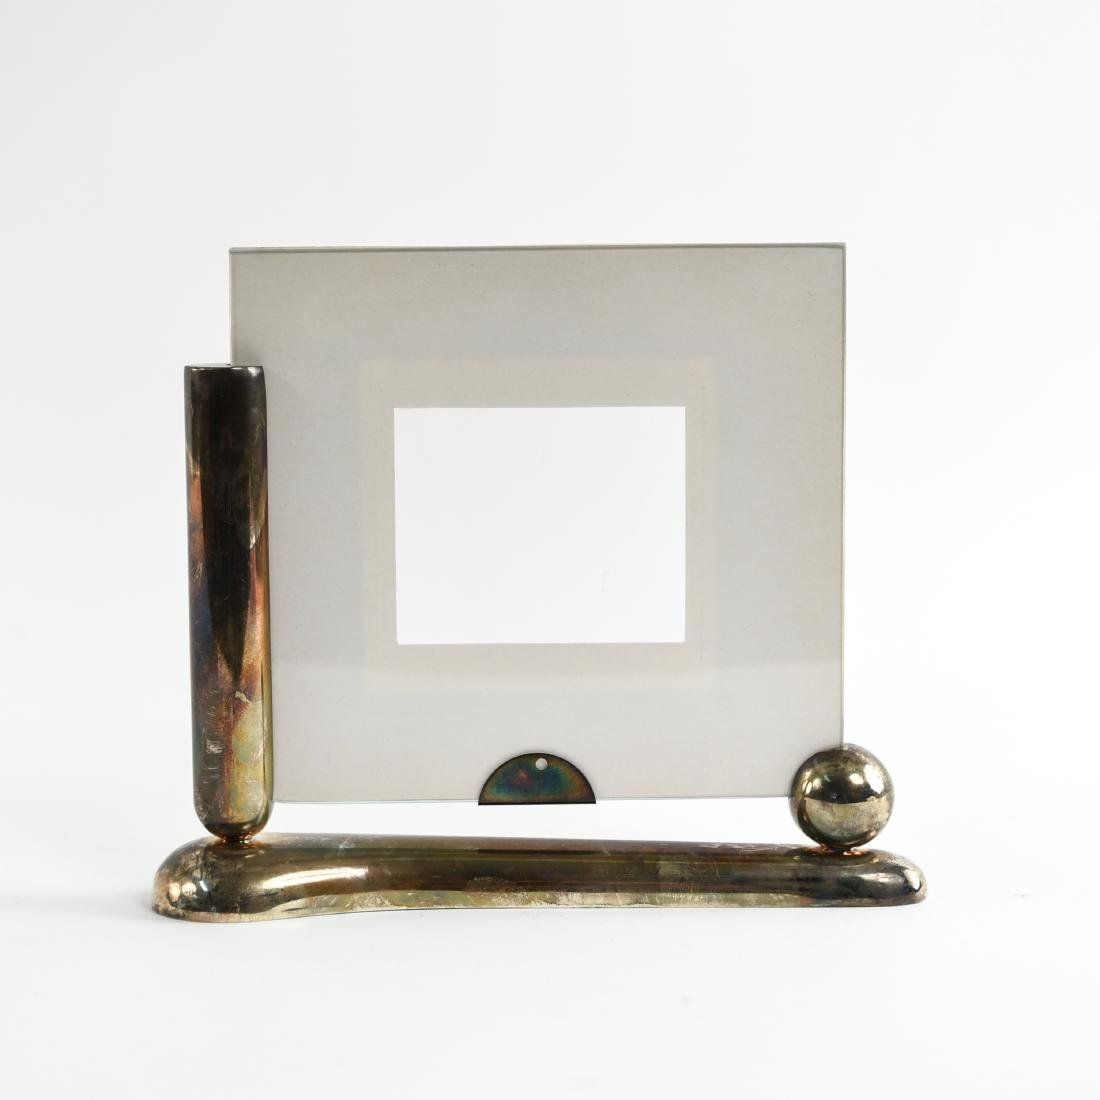 SILVER ART DECO PICTURE FRAME